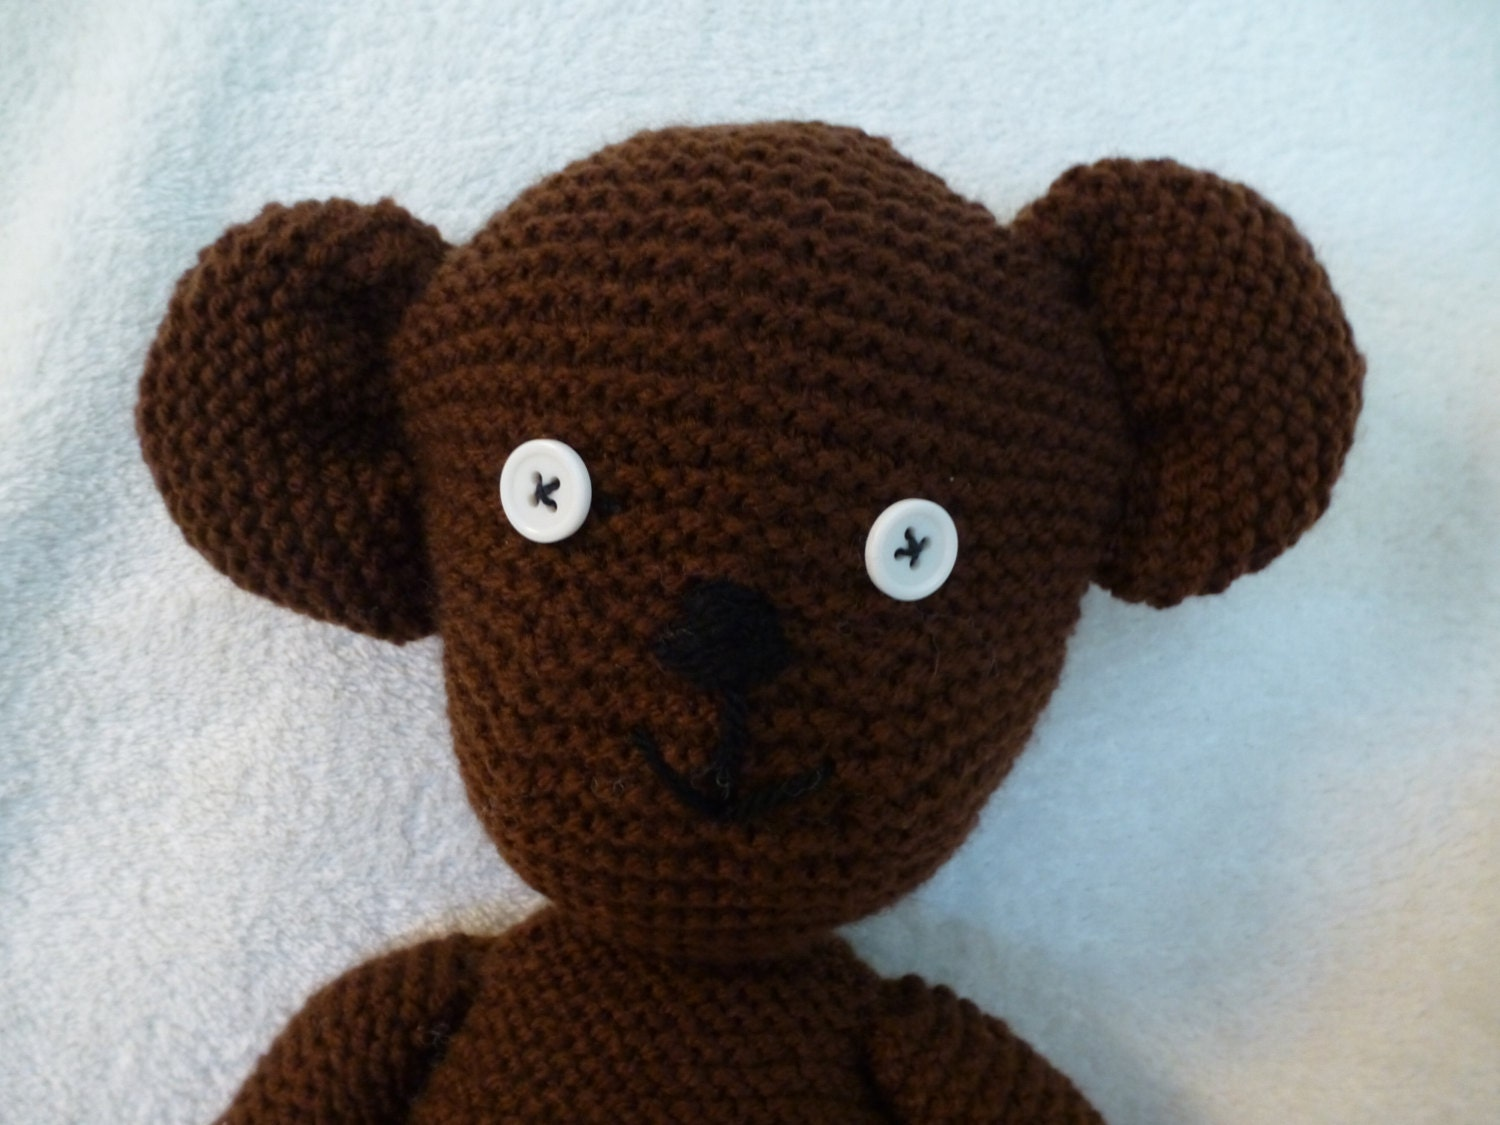 Mr Bean style teddy bear. Hand knitted. Complete with floppy